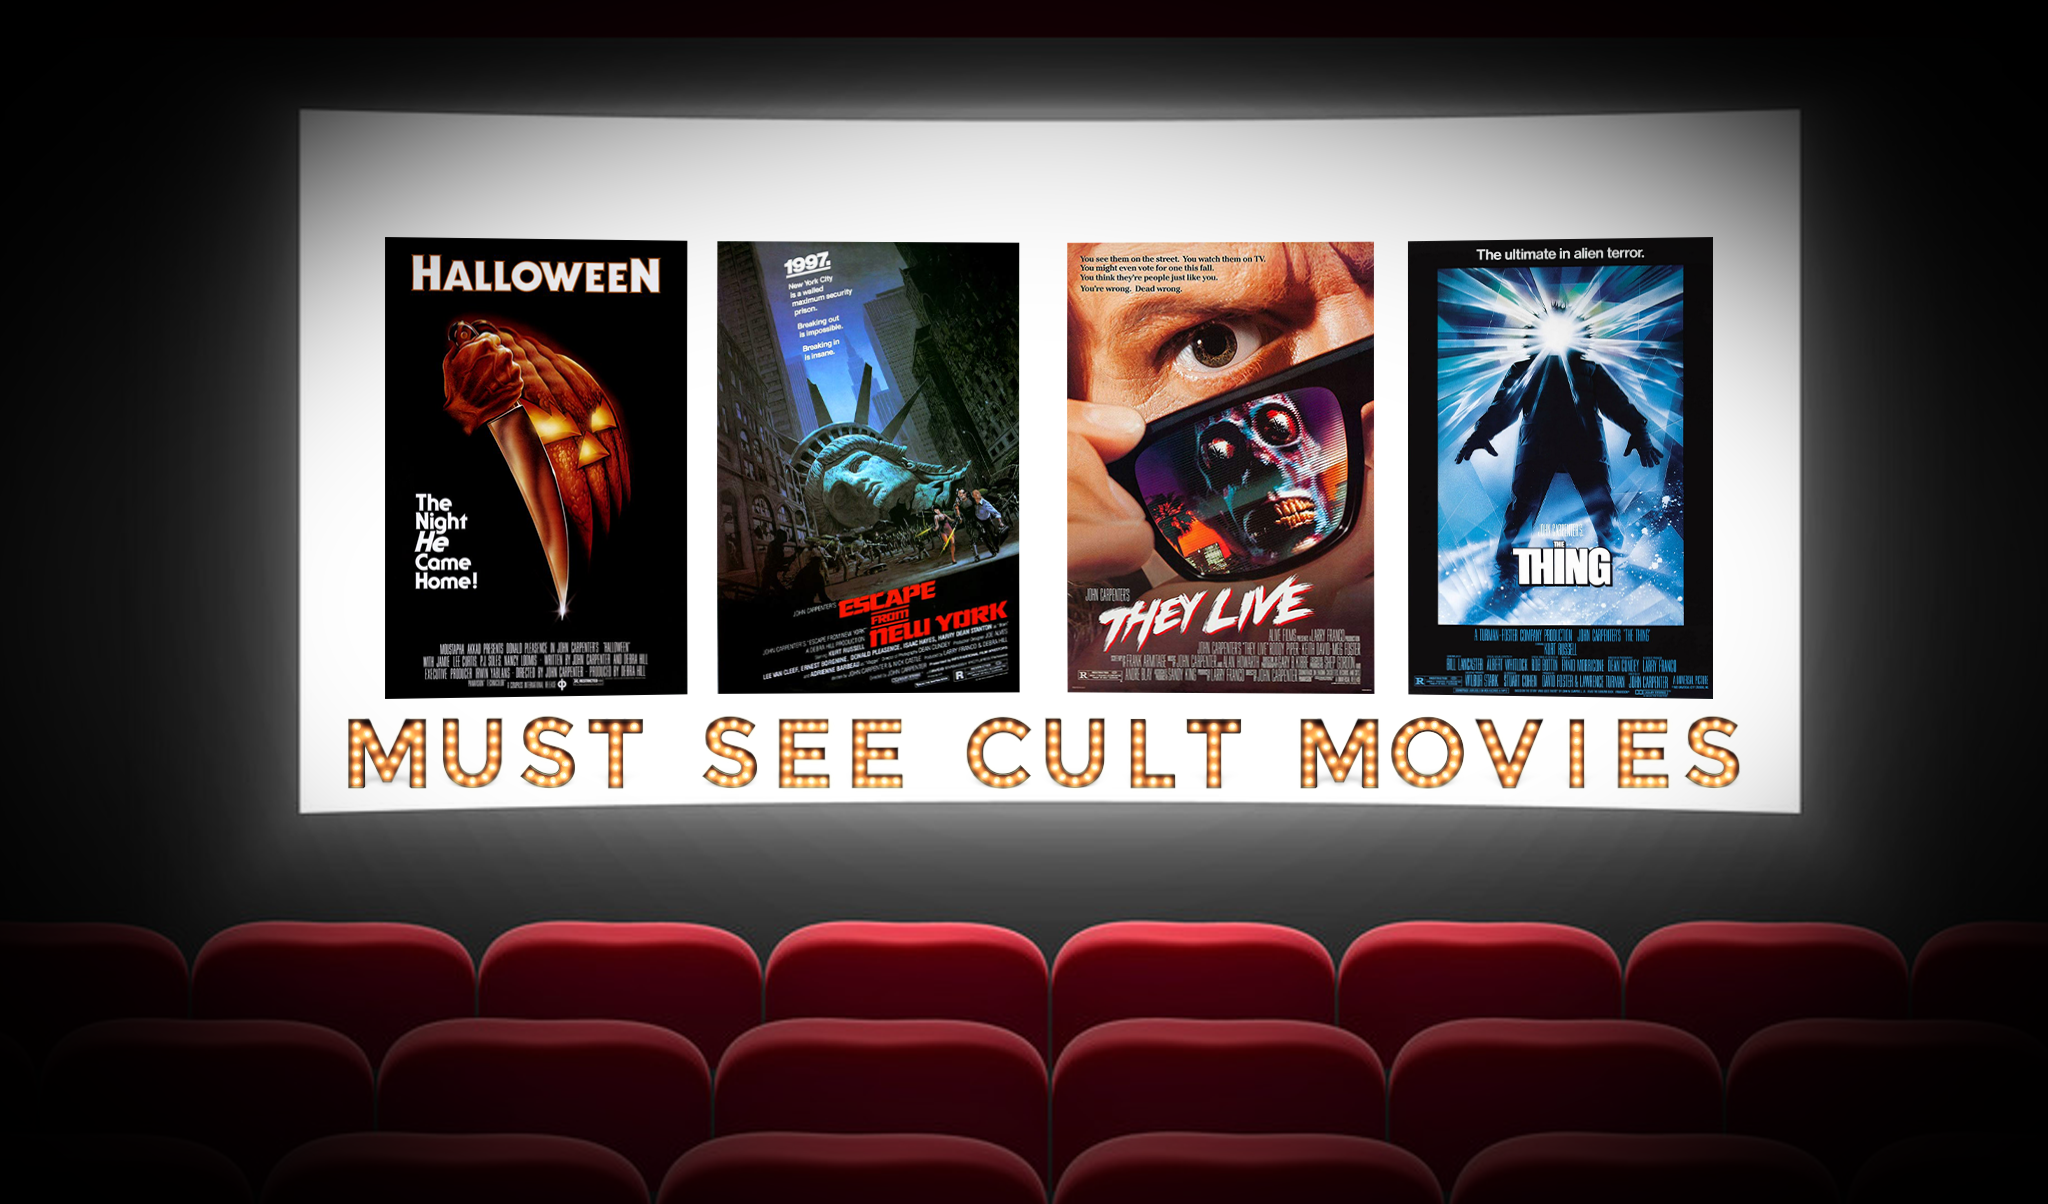 Must see cult movies